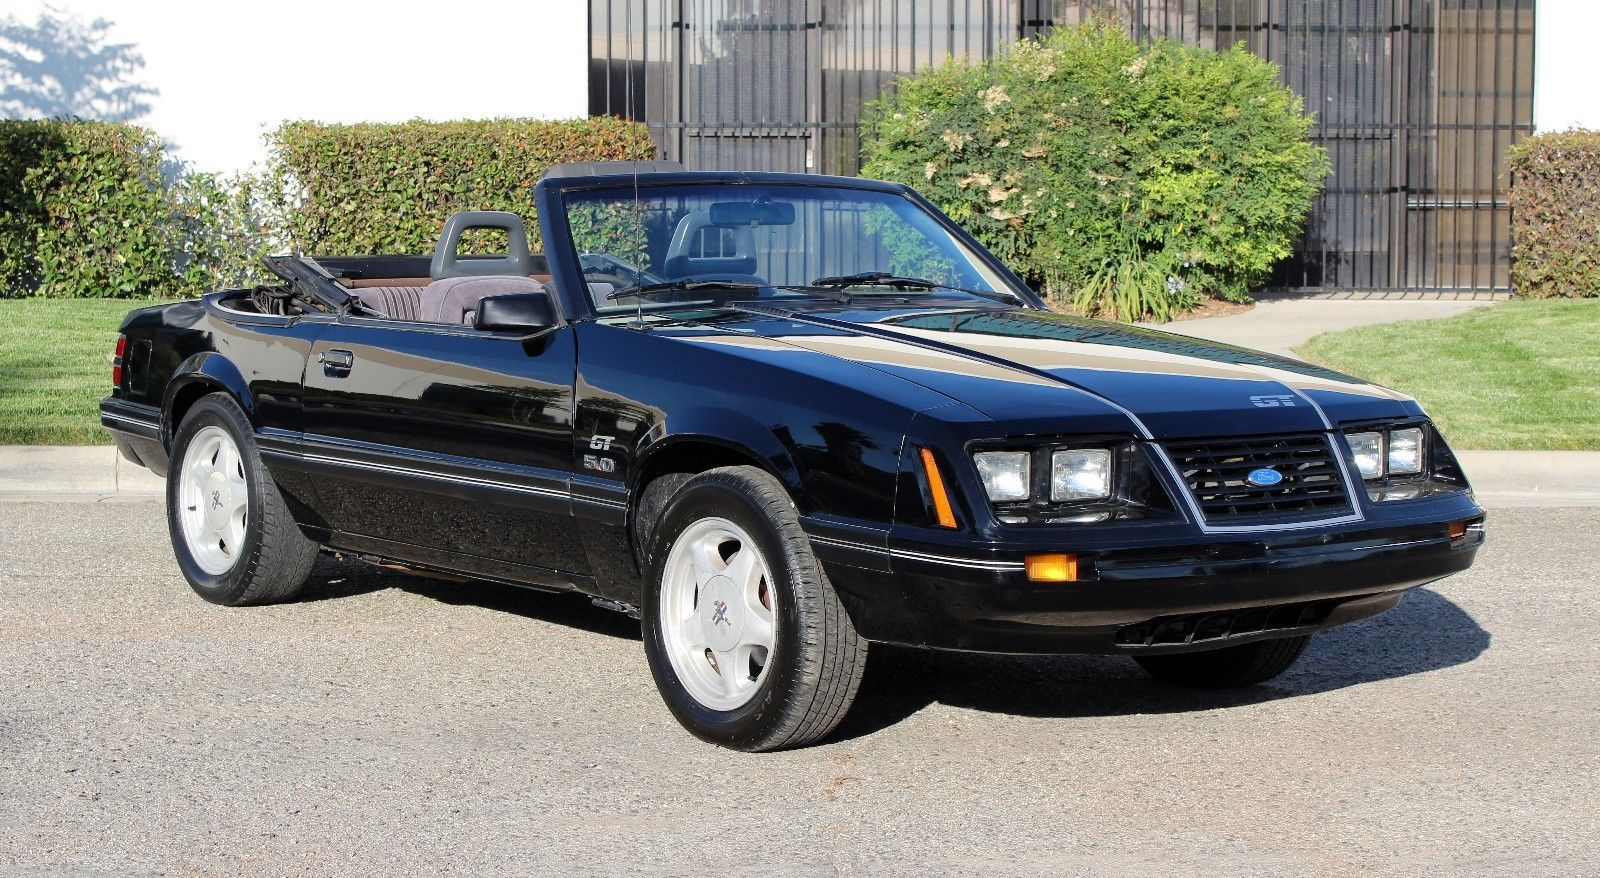 Ebay 1984 Ford Mustang Gt Convertible 5 0 5 Spd One Owner Runs A California Original 1984 Mustang Gt Ford Mustang Convertible Ford Mustang Gt Mustang Gt